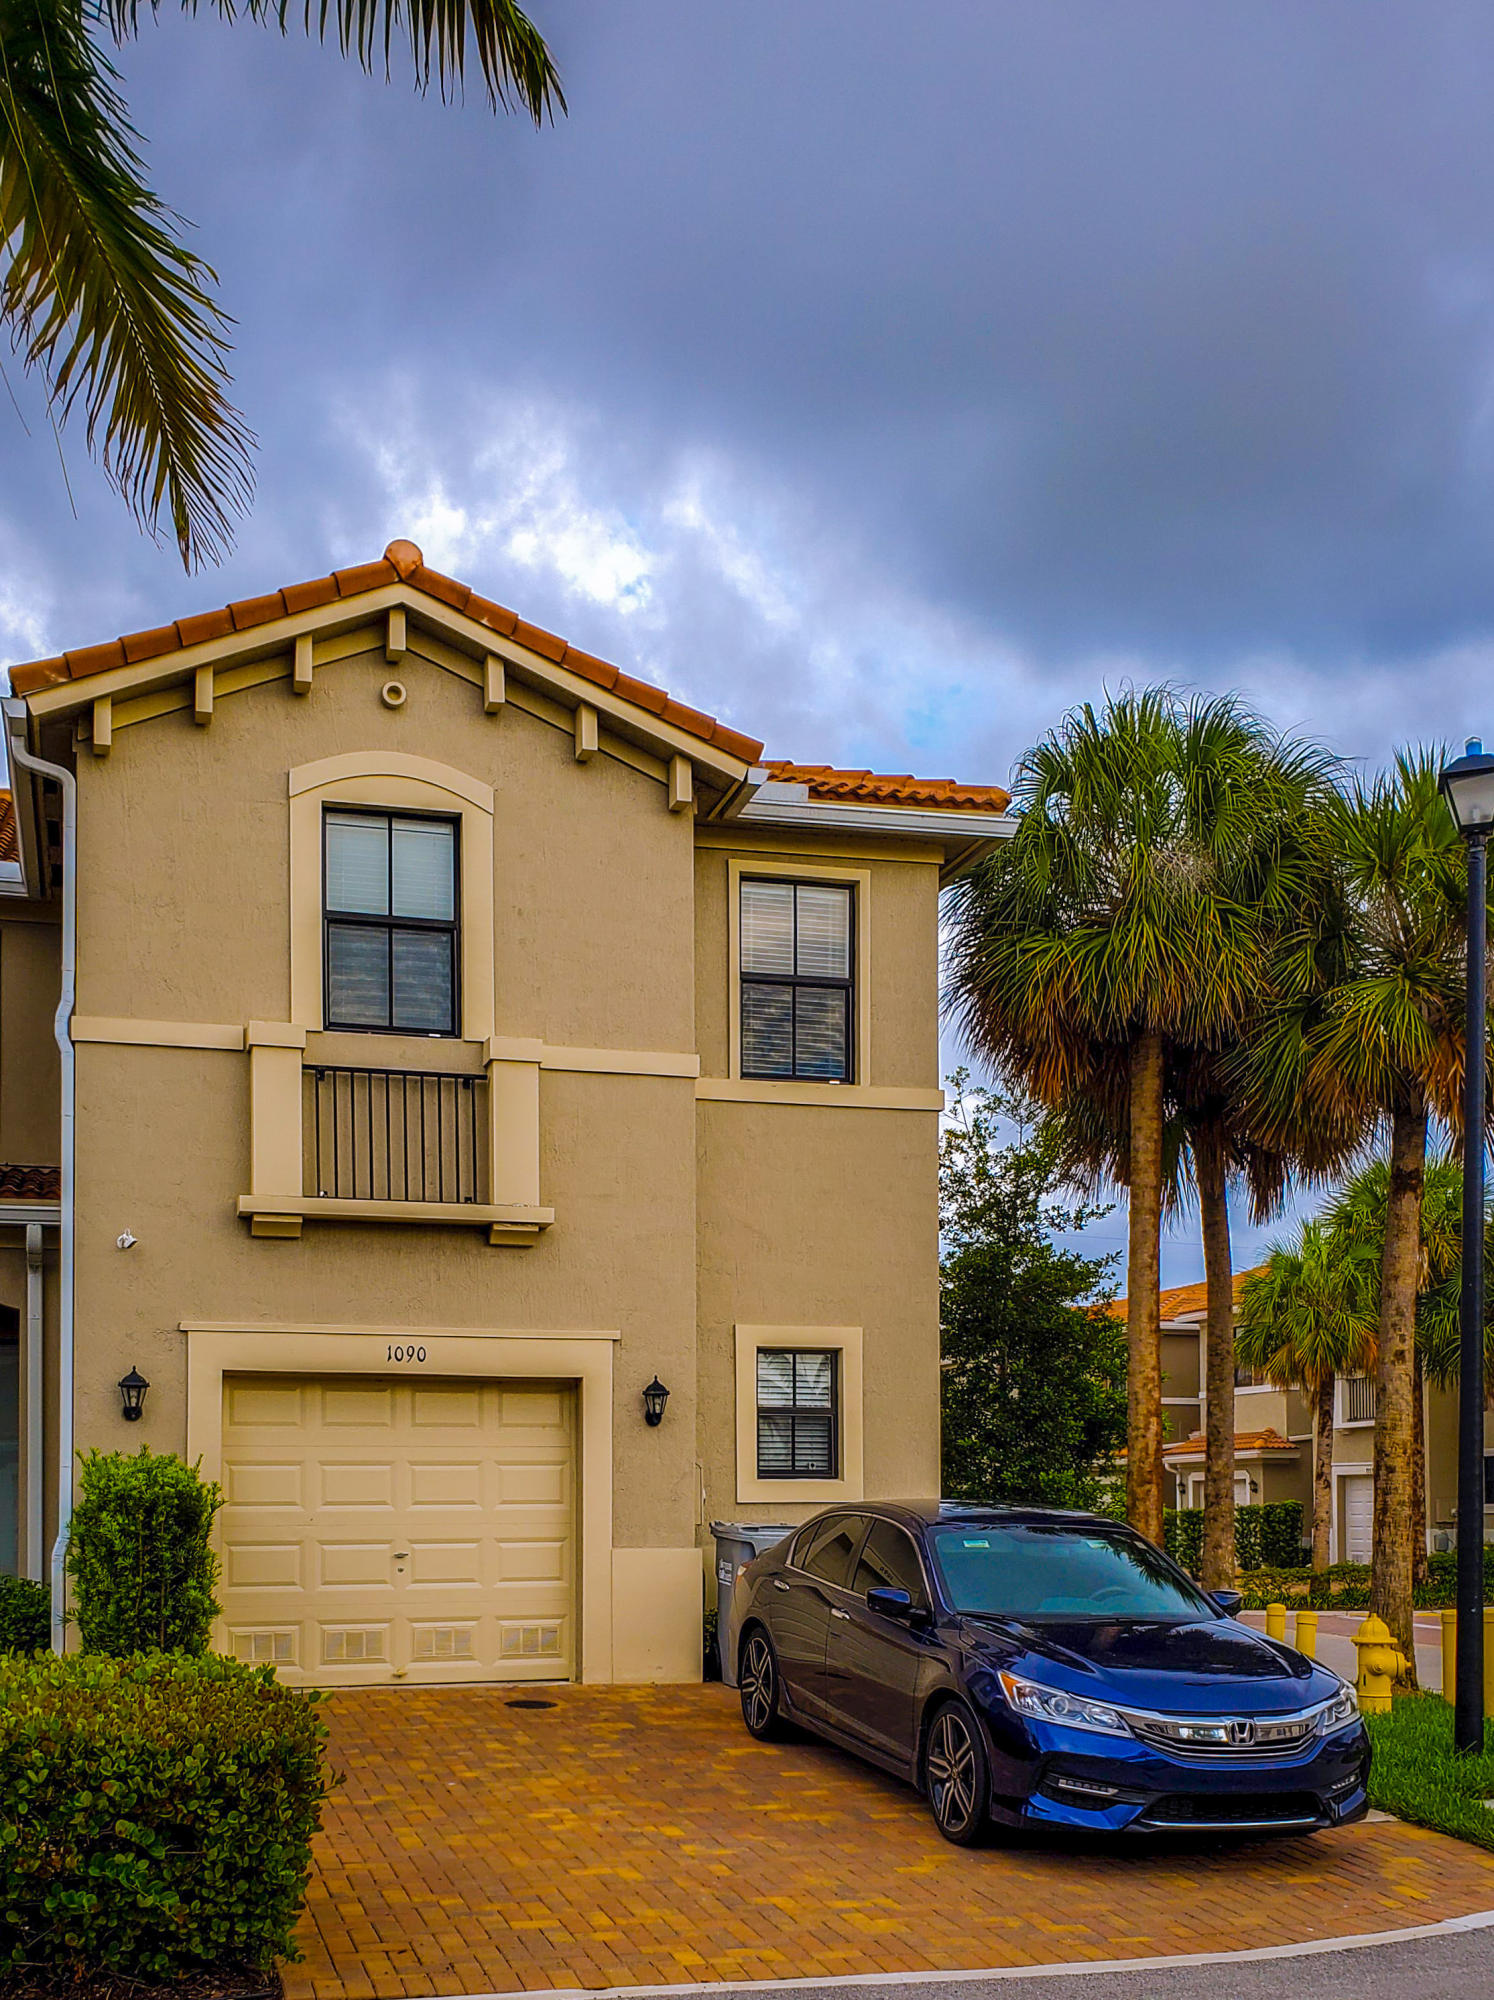 Home for sale in Madison Place Pompano Beach Florida